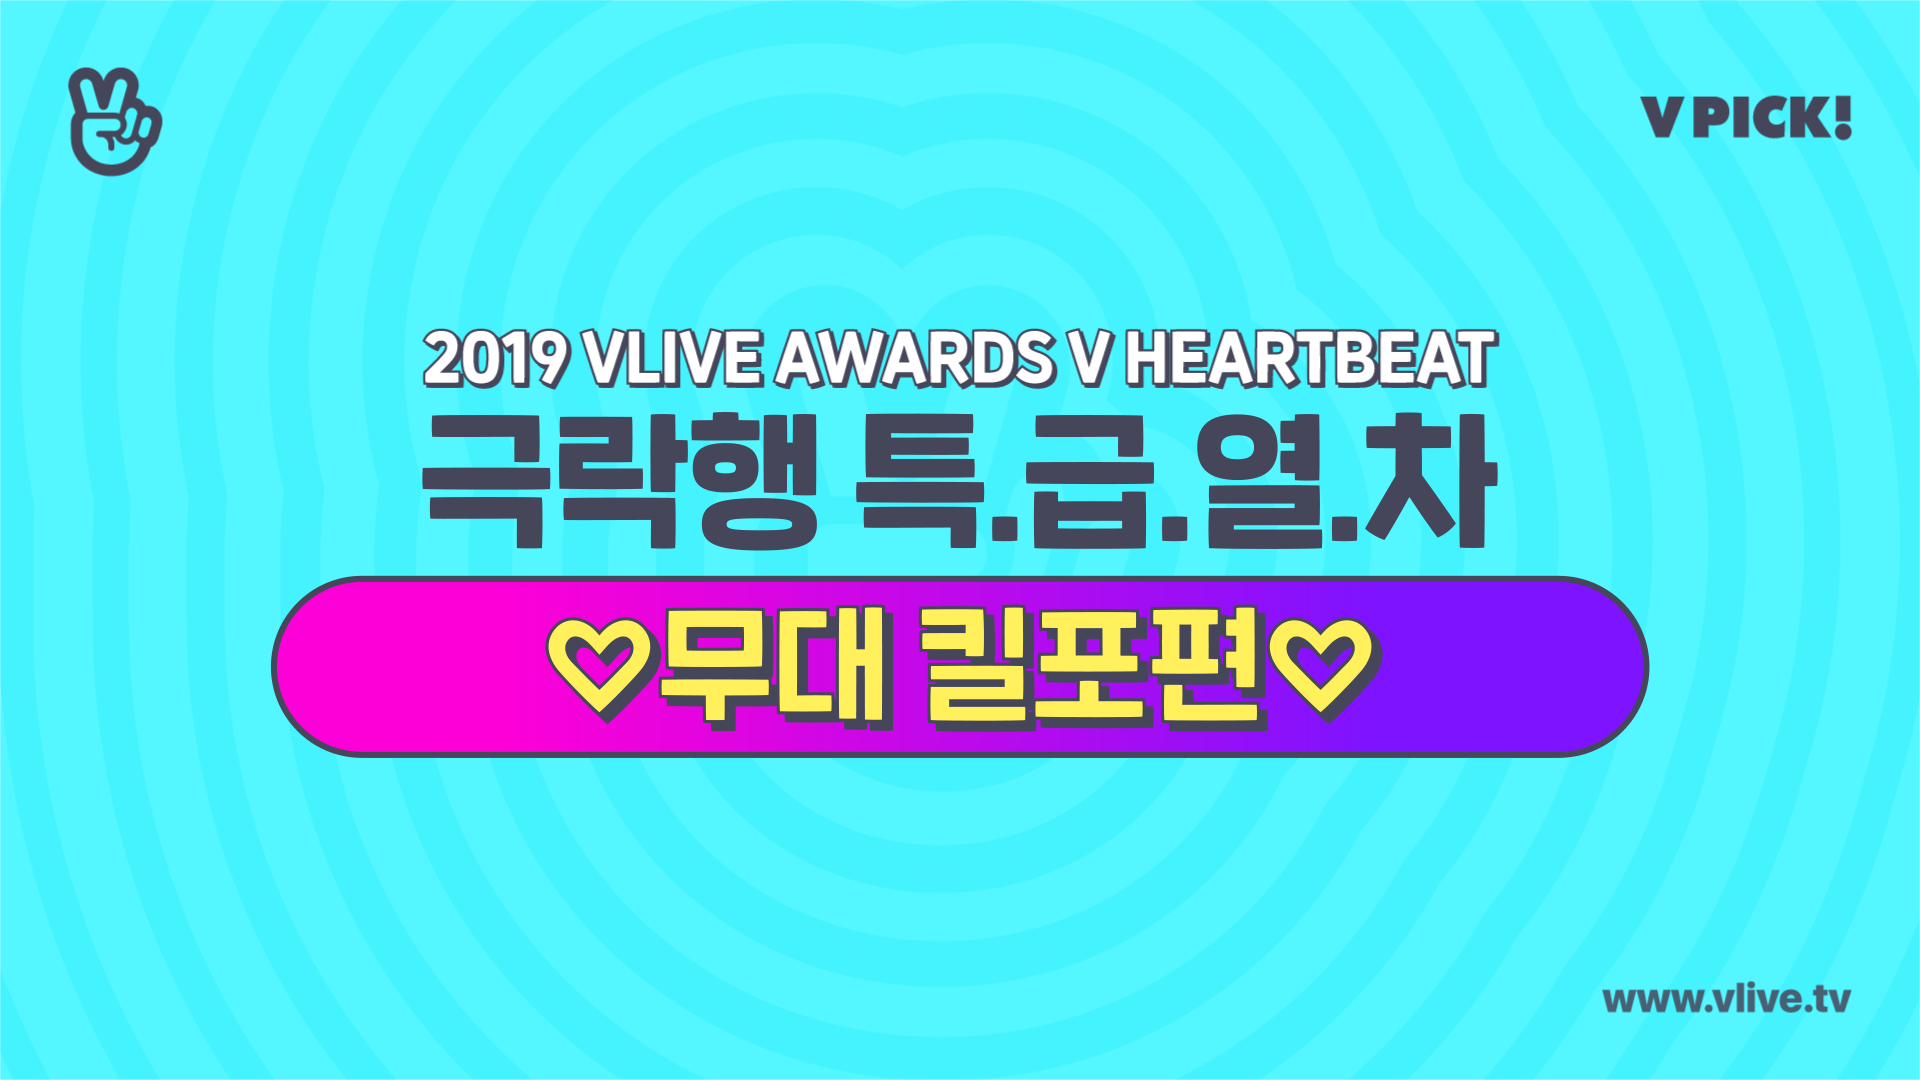 [V PICK!] 2019 V HEARTBEAT 하이라이트 ✨무대 킬포편✨ (2019 V HEARTBEAT PICK! 'STAGE HIGHLIGHT')